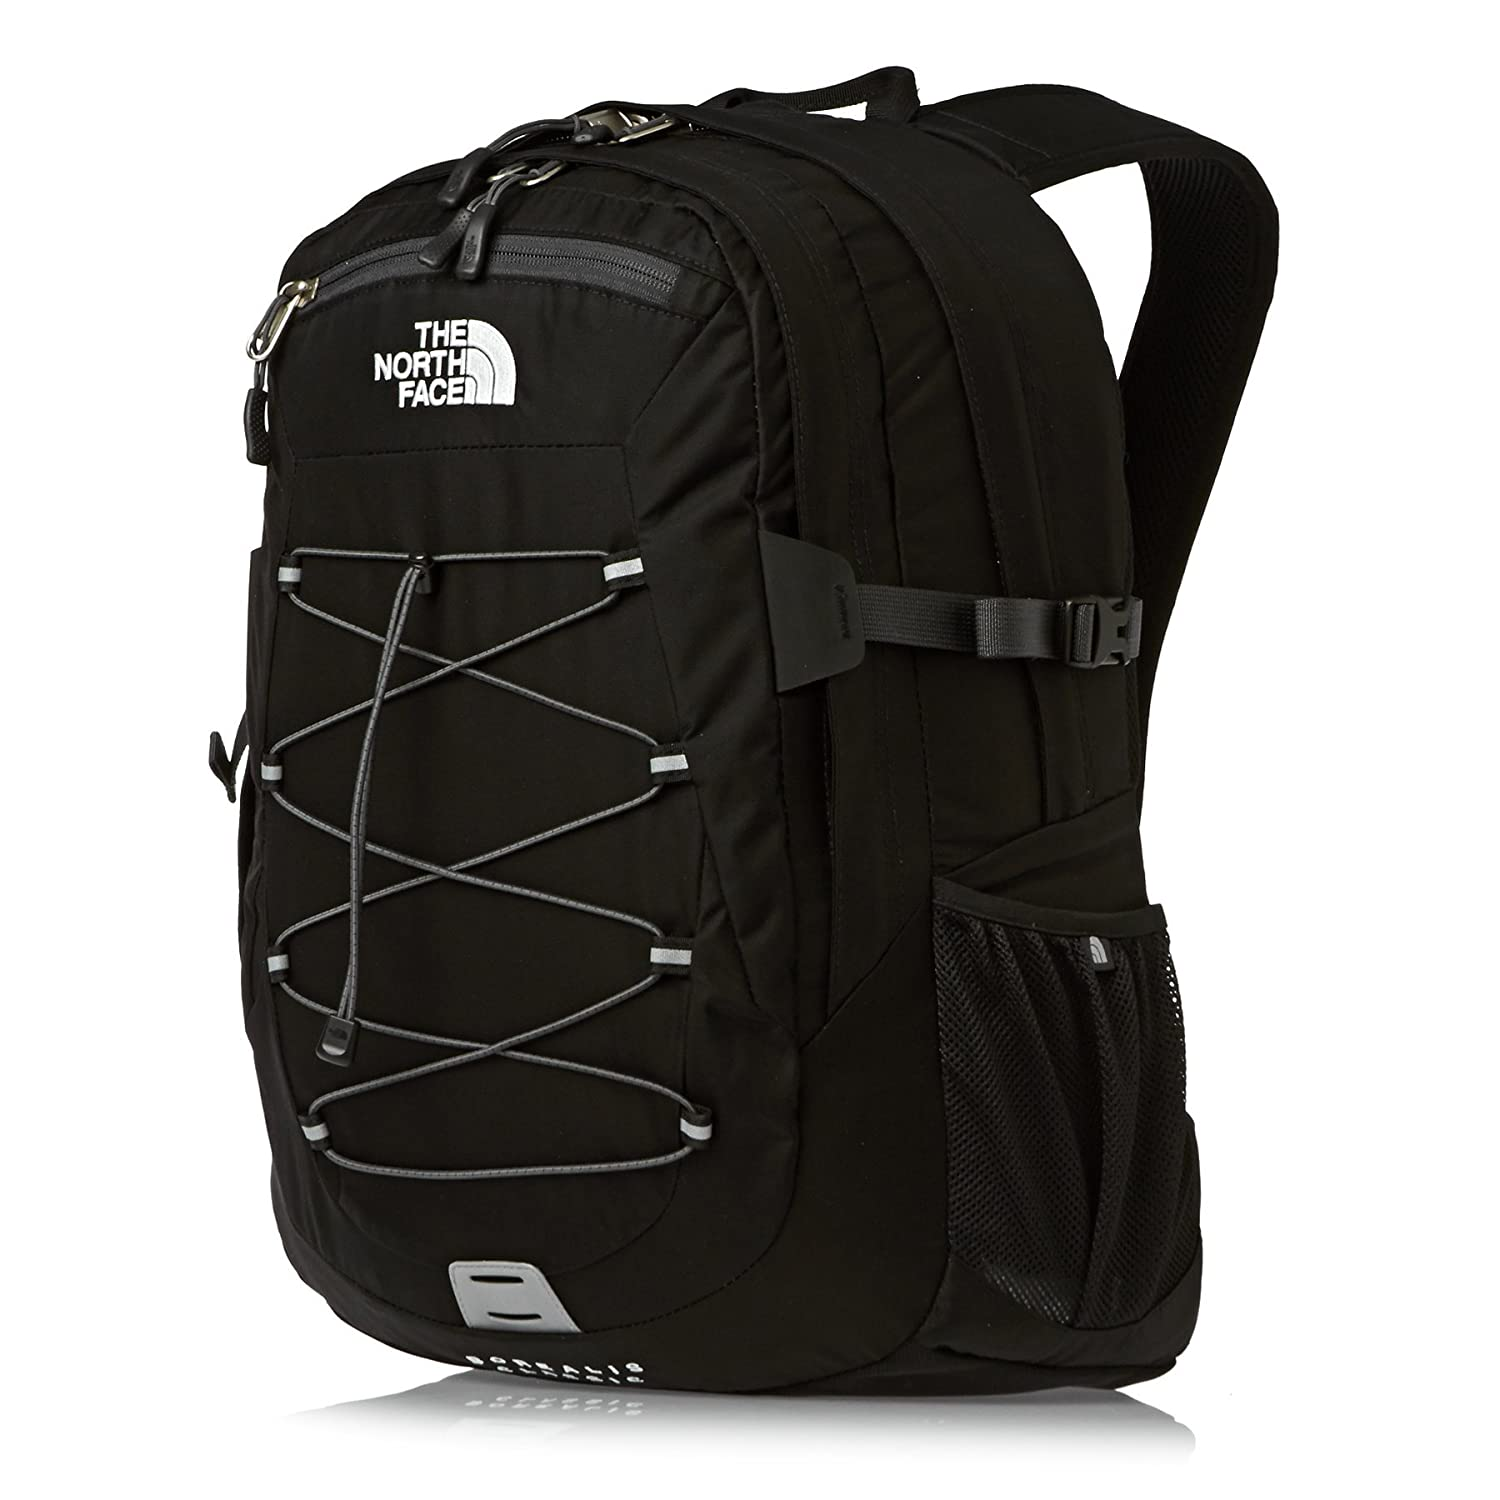 b11ff5480 THE NORTH FACE Borealis Classic Backpack 29 black 2019 outdoor ...